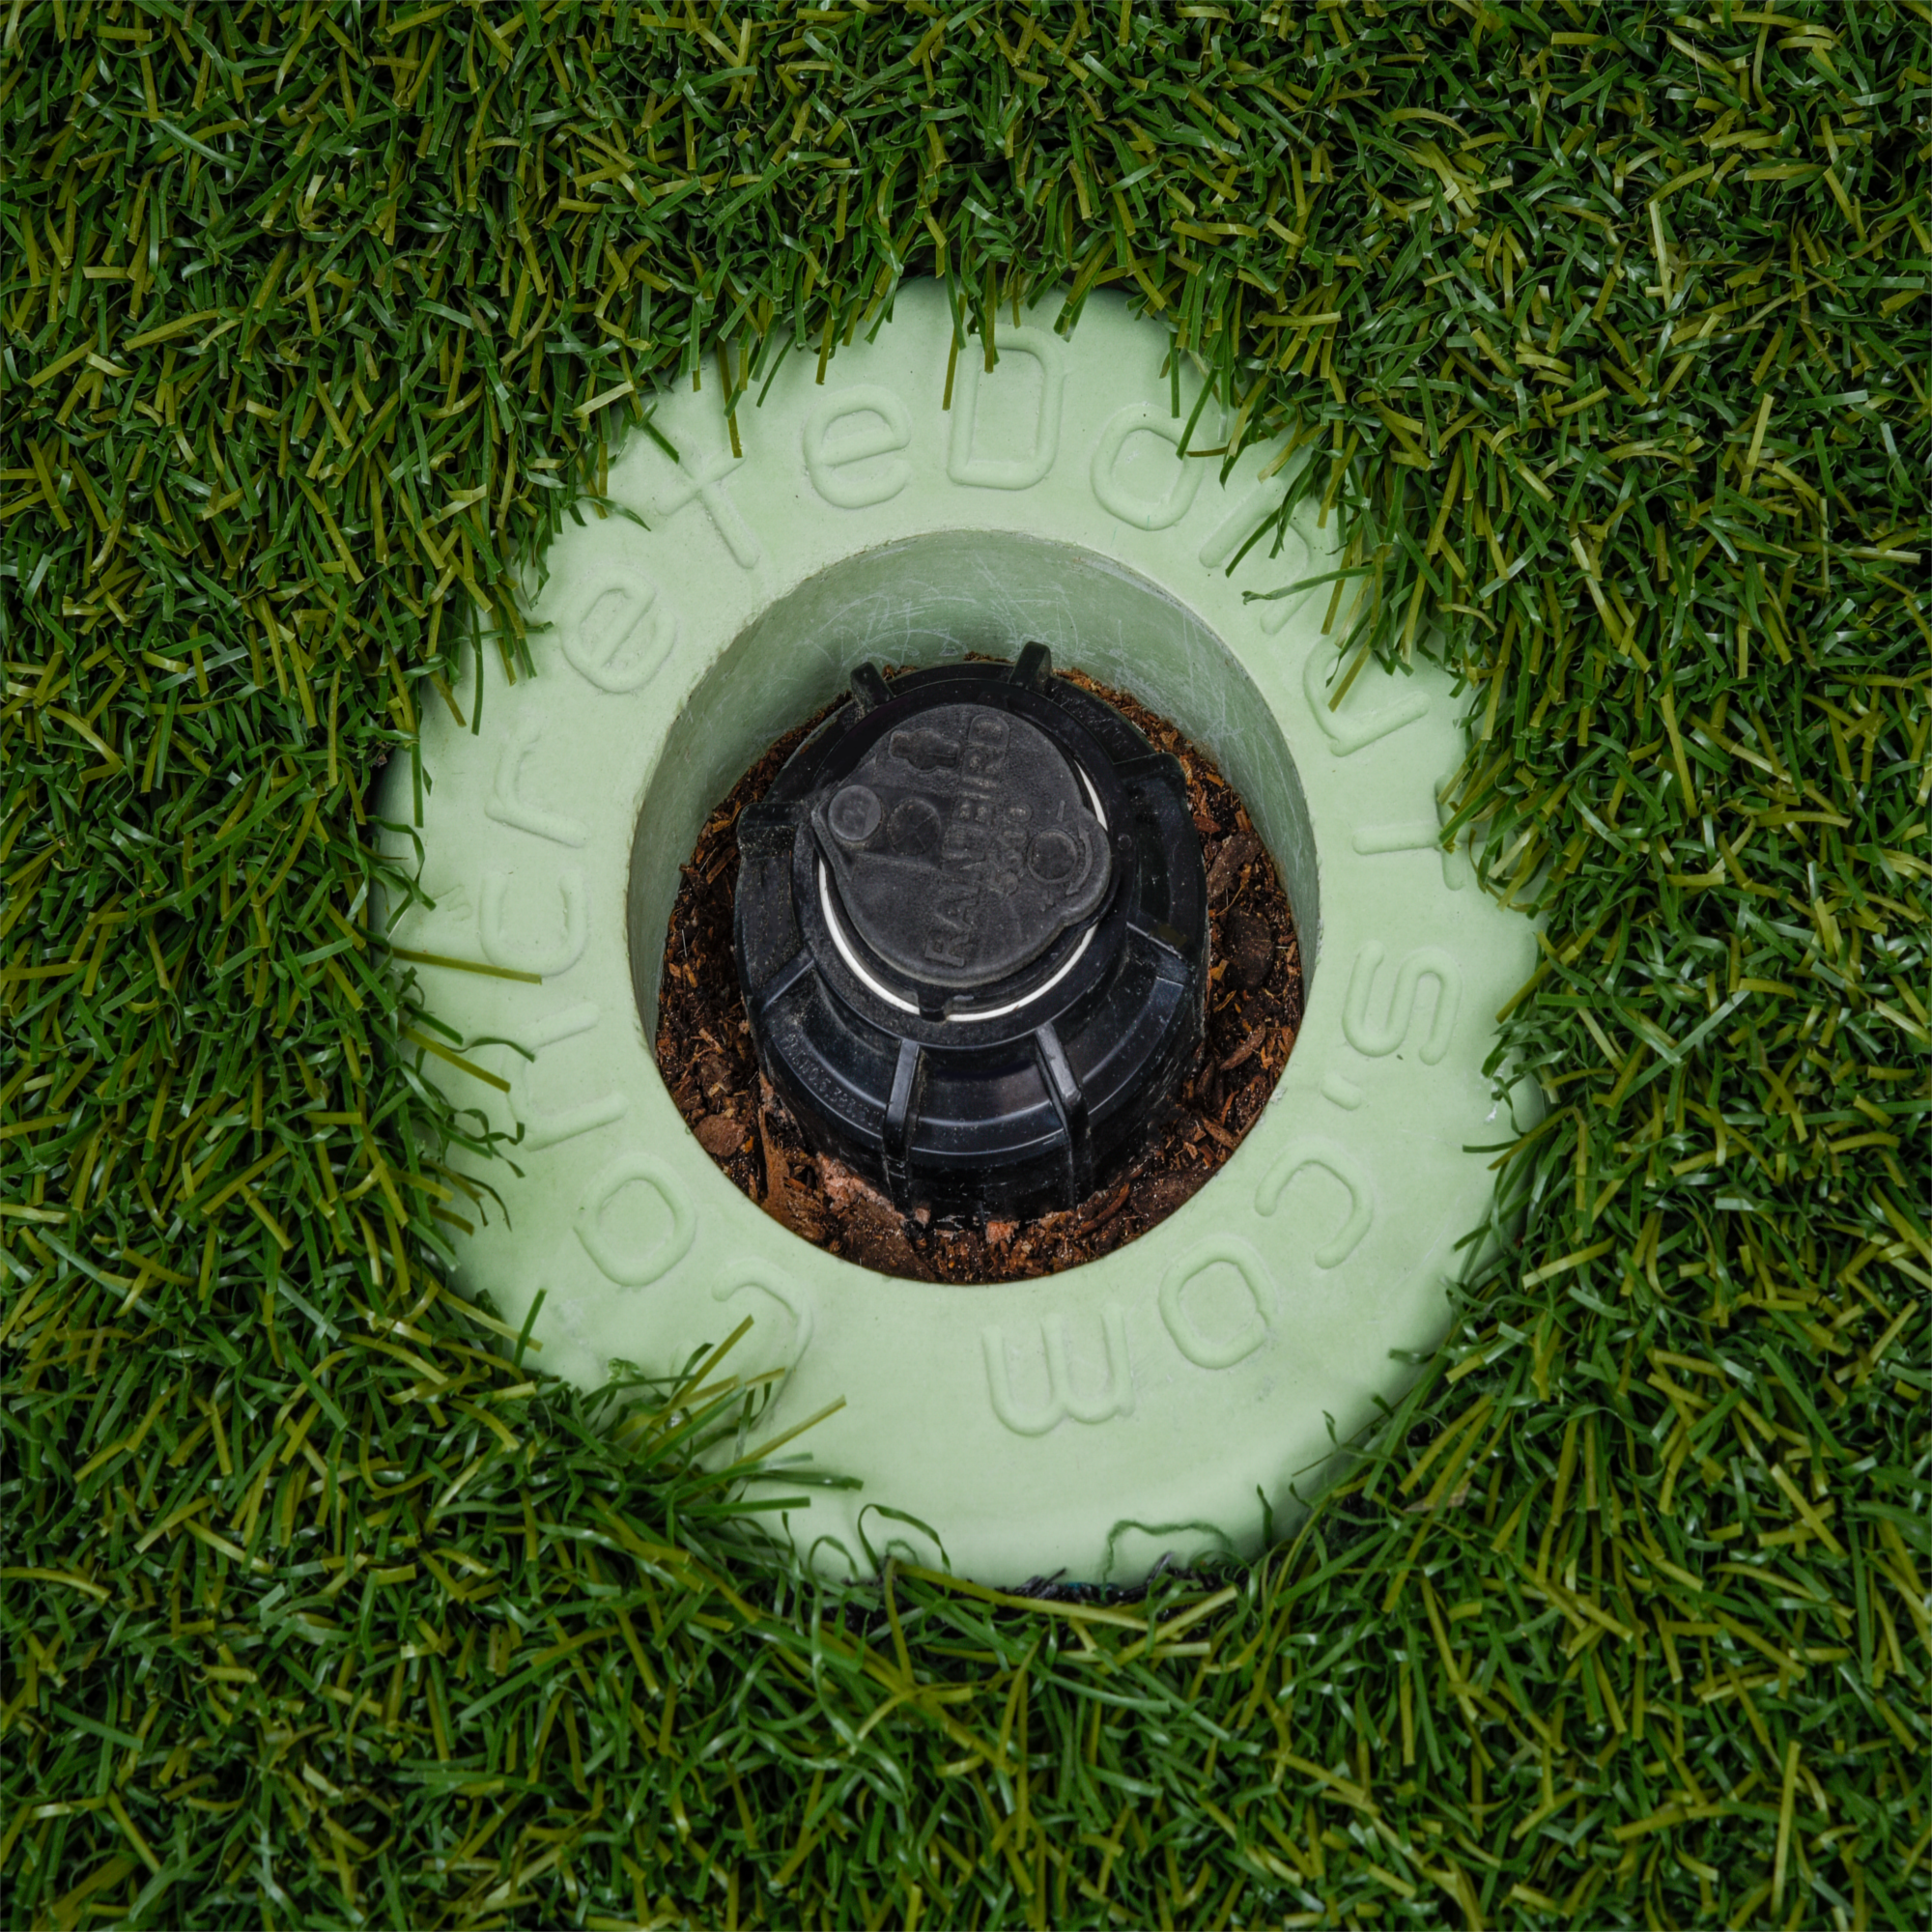 Pin By Concrete Donuts On Sprinkler Heads Protected From